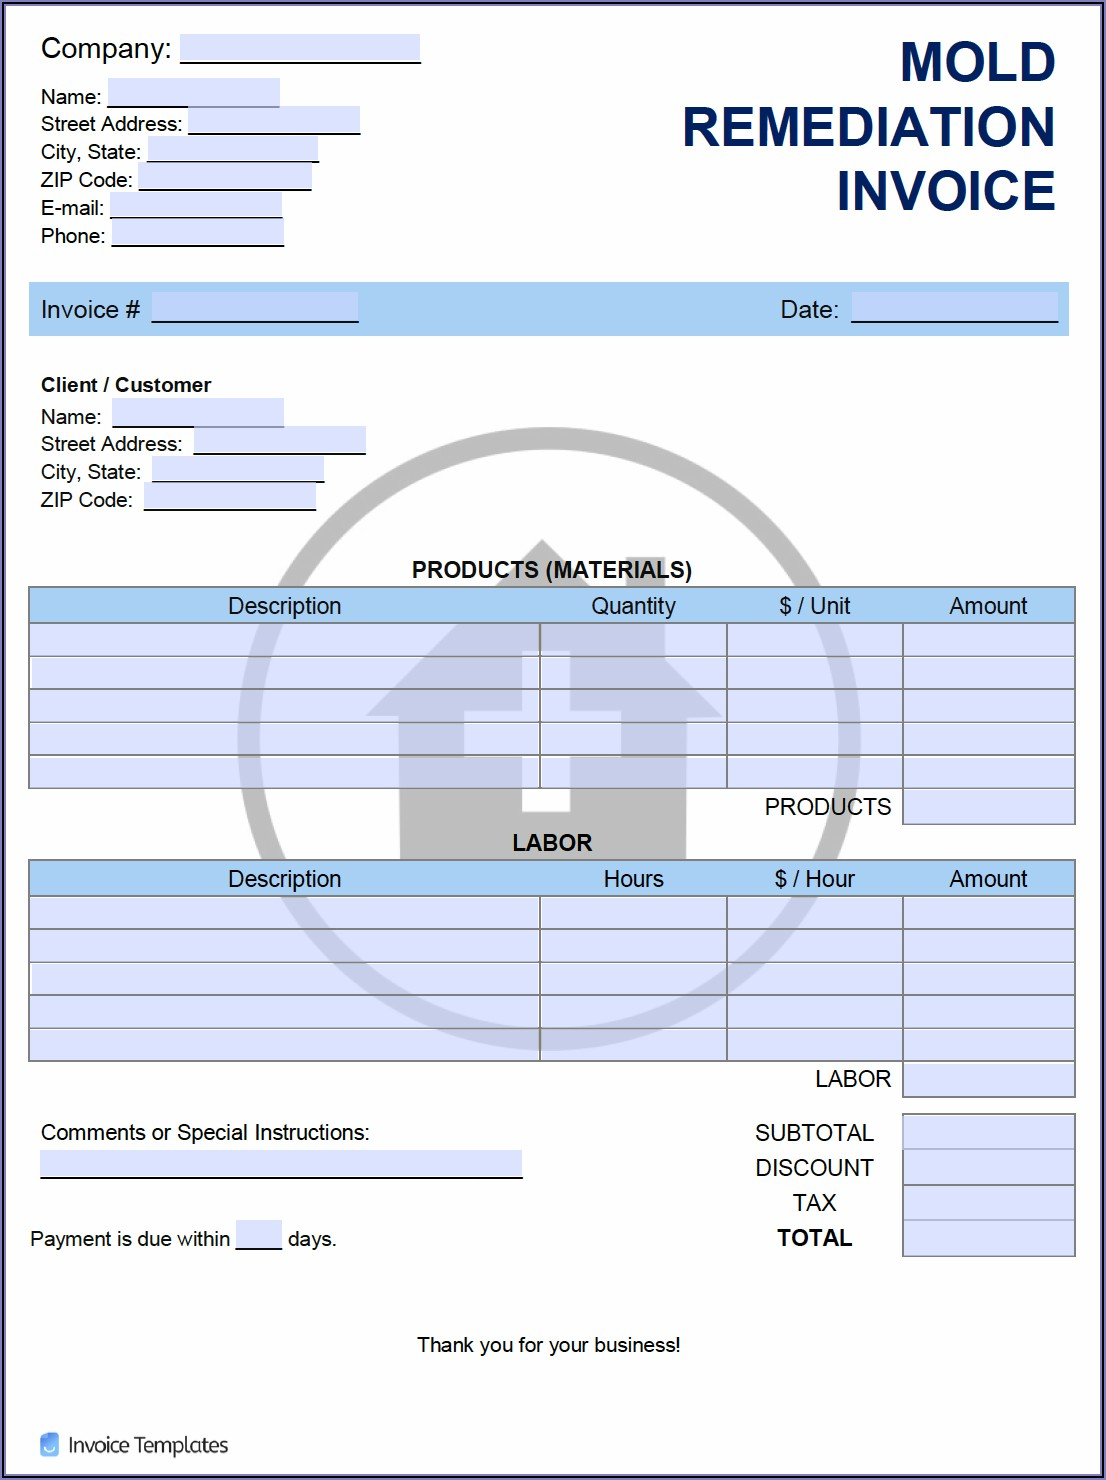 Mold Remediation Invoice Template